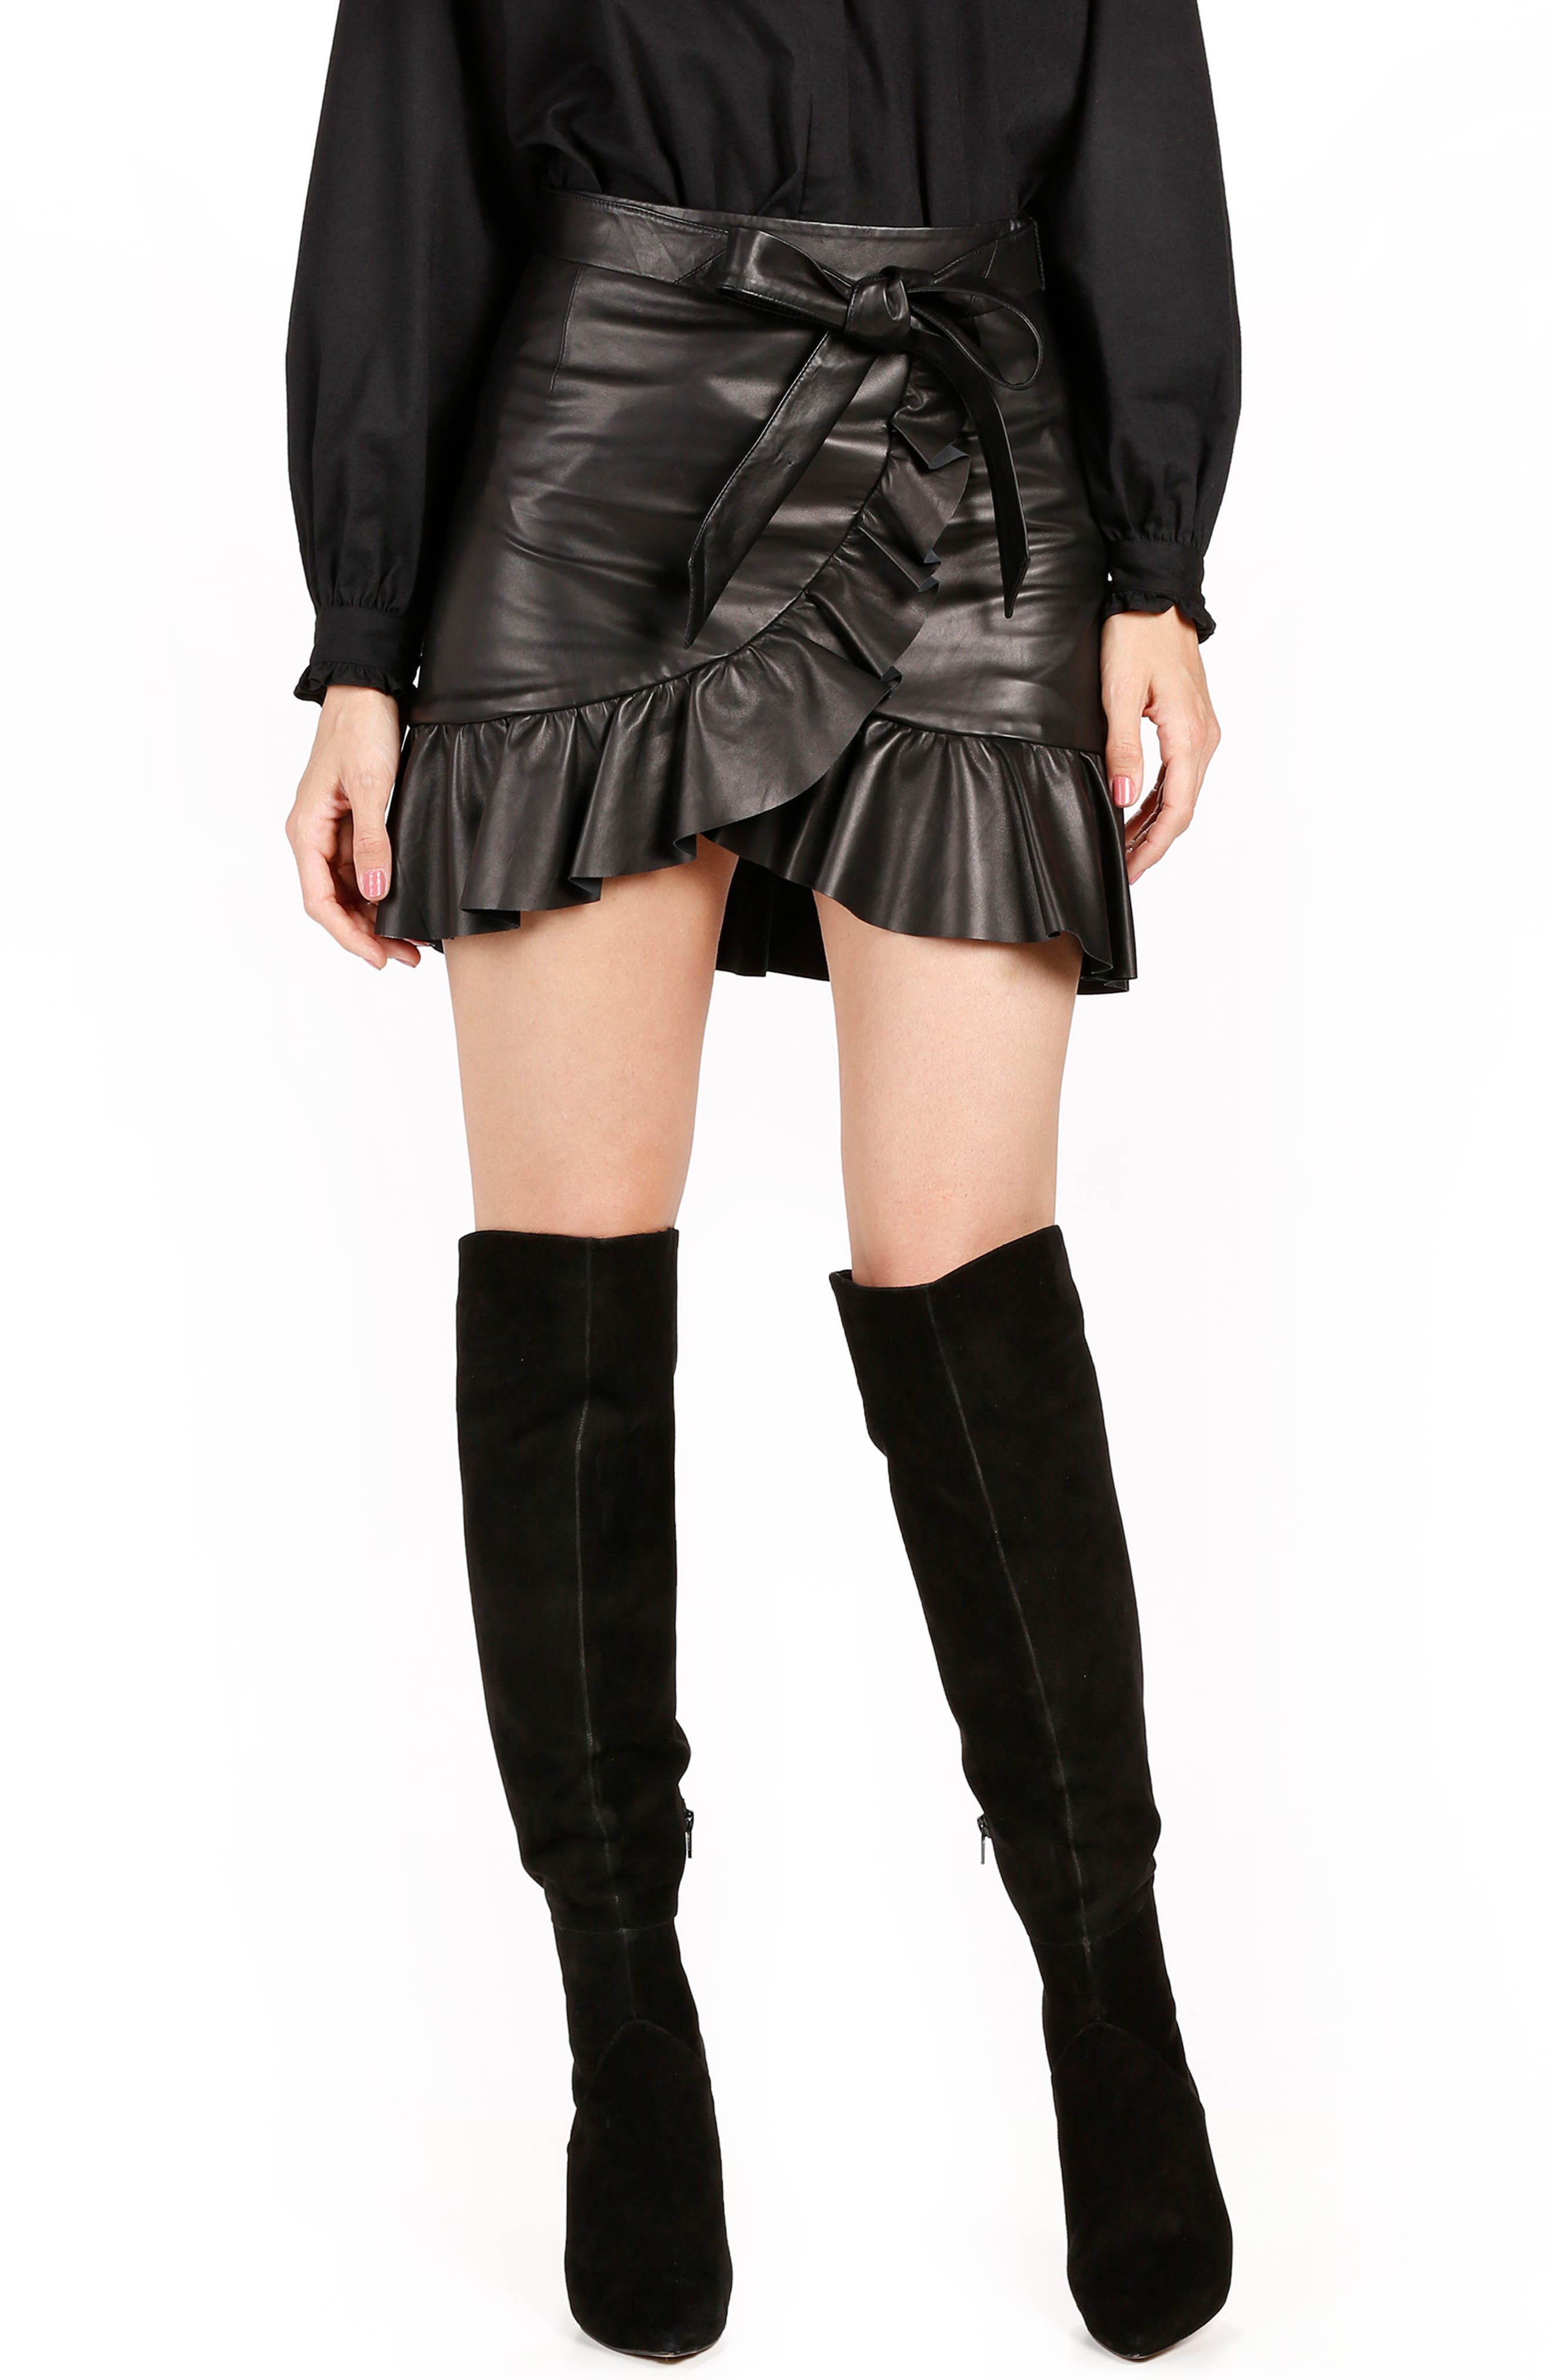 Nivelle Ruffle Leather Skirt,                         Main,                         color, Black